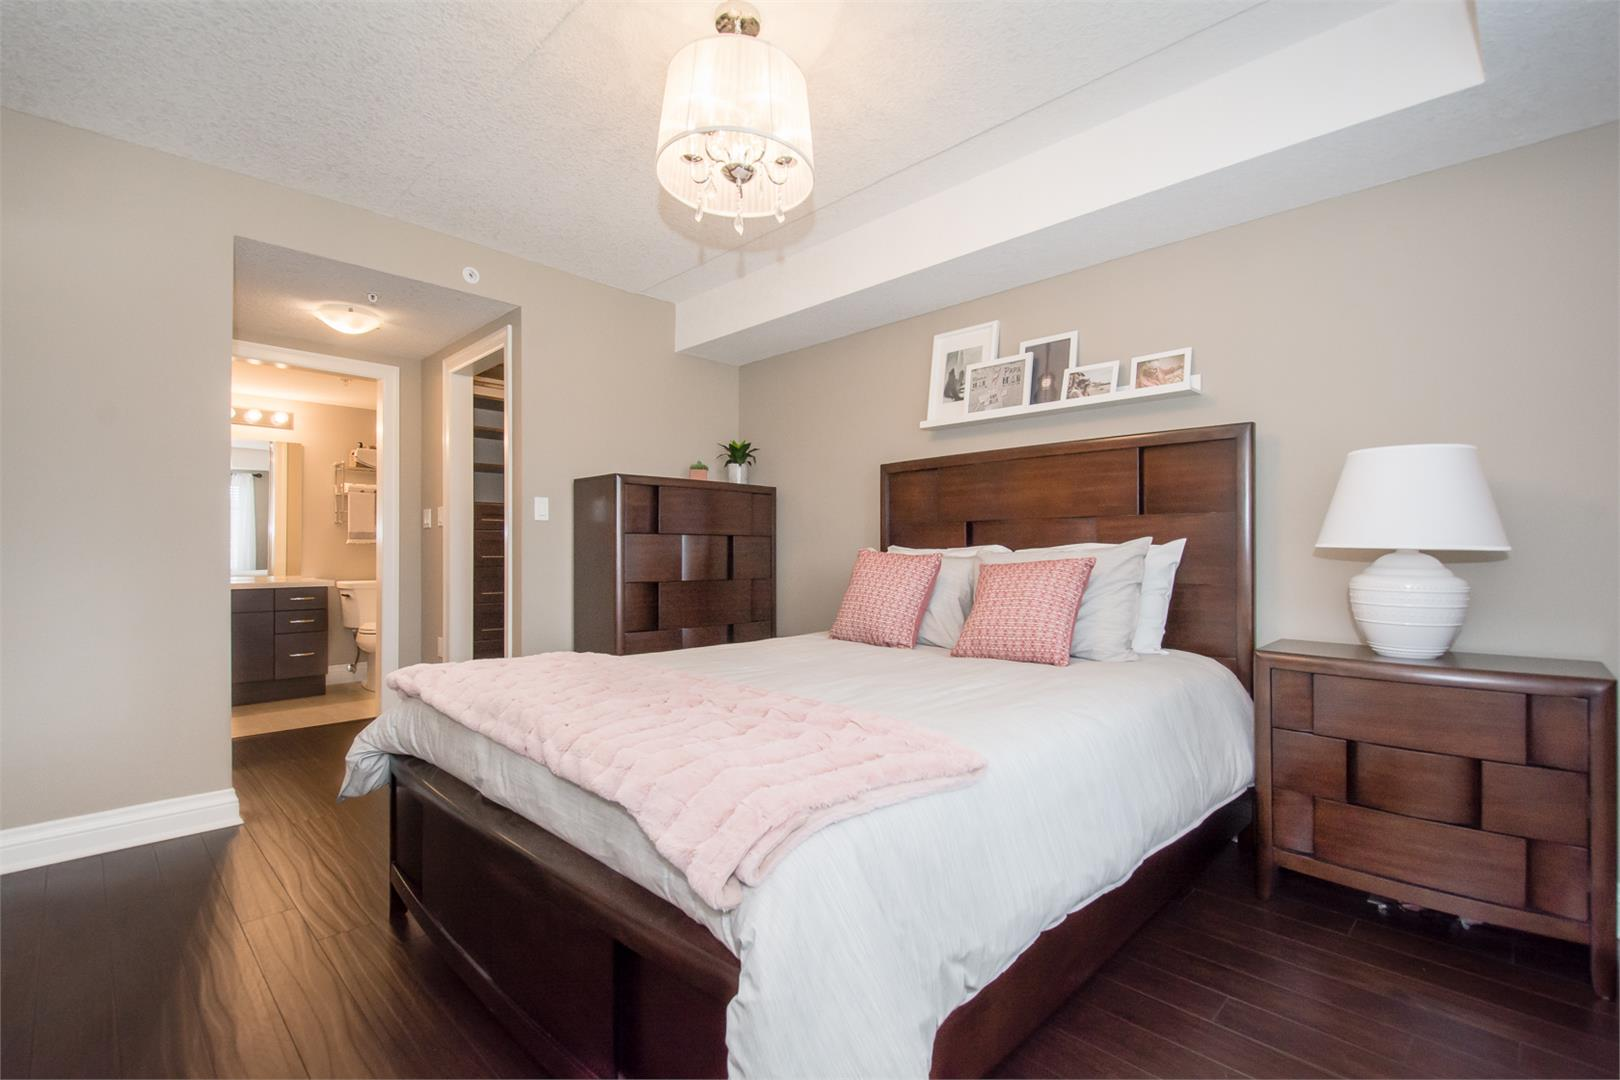 Activa Reflections at Laurelwood Phase 2 Master Suite